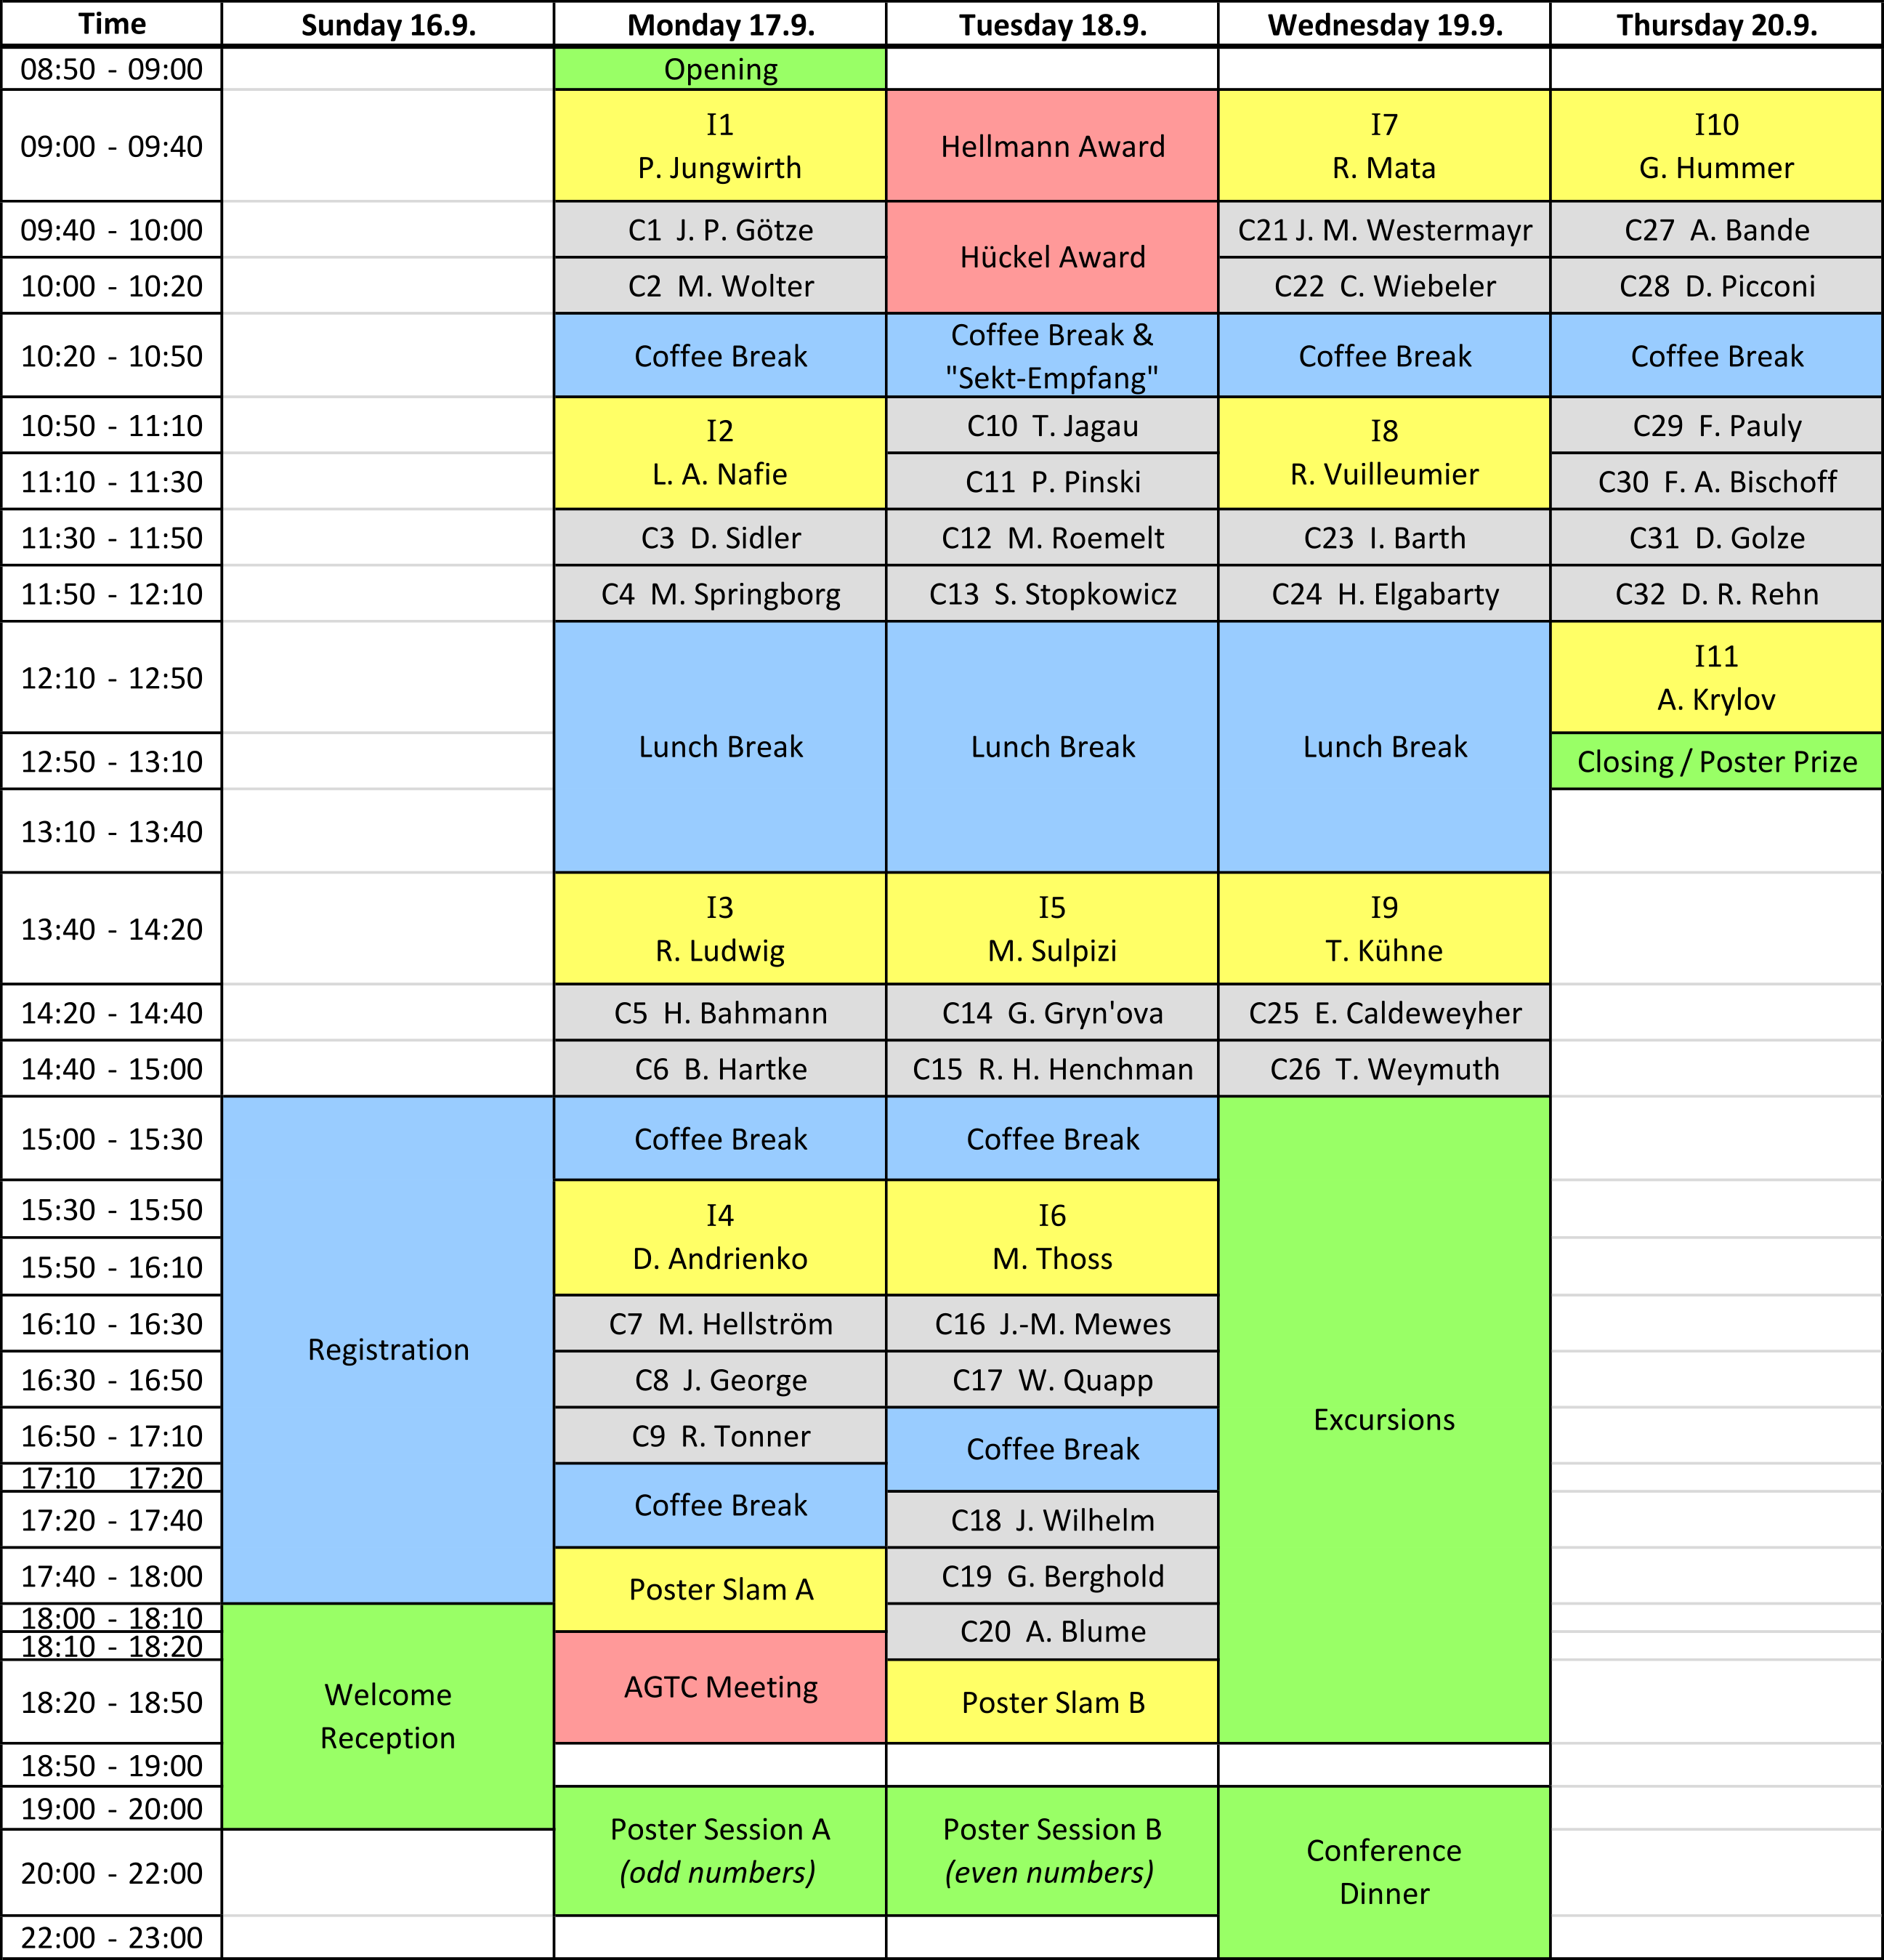 STC 2018 Conference Schedule